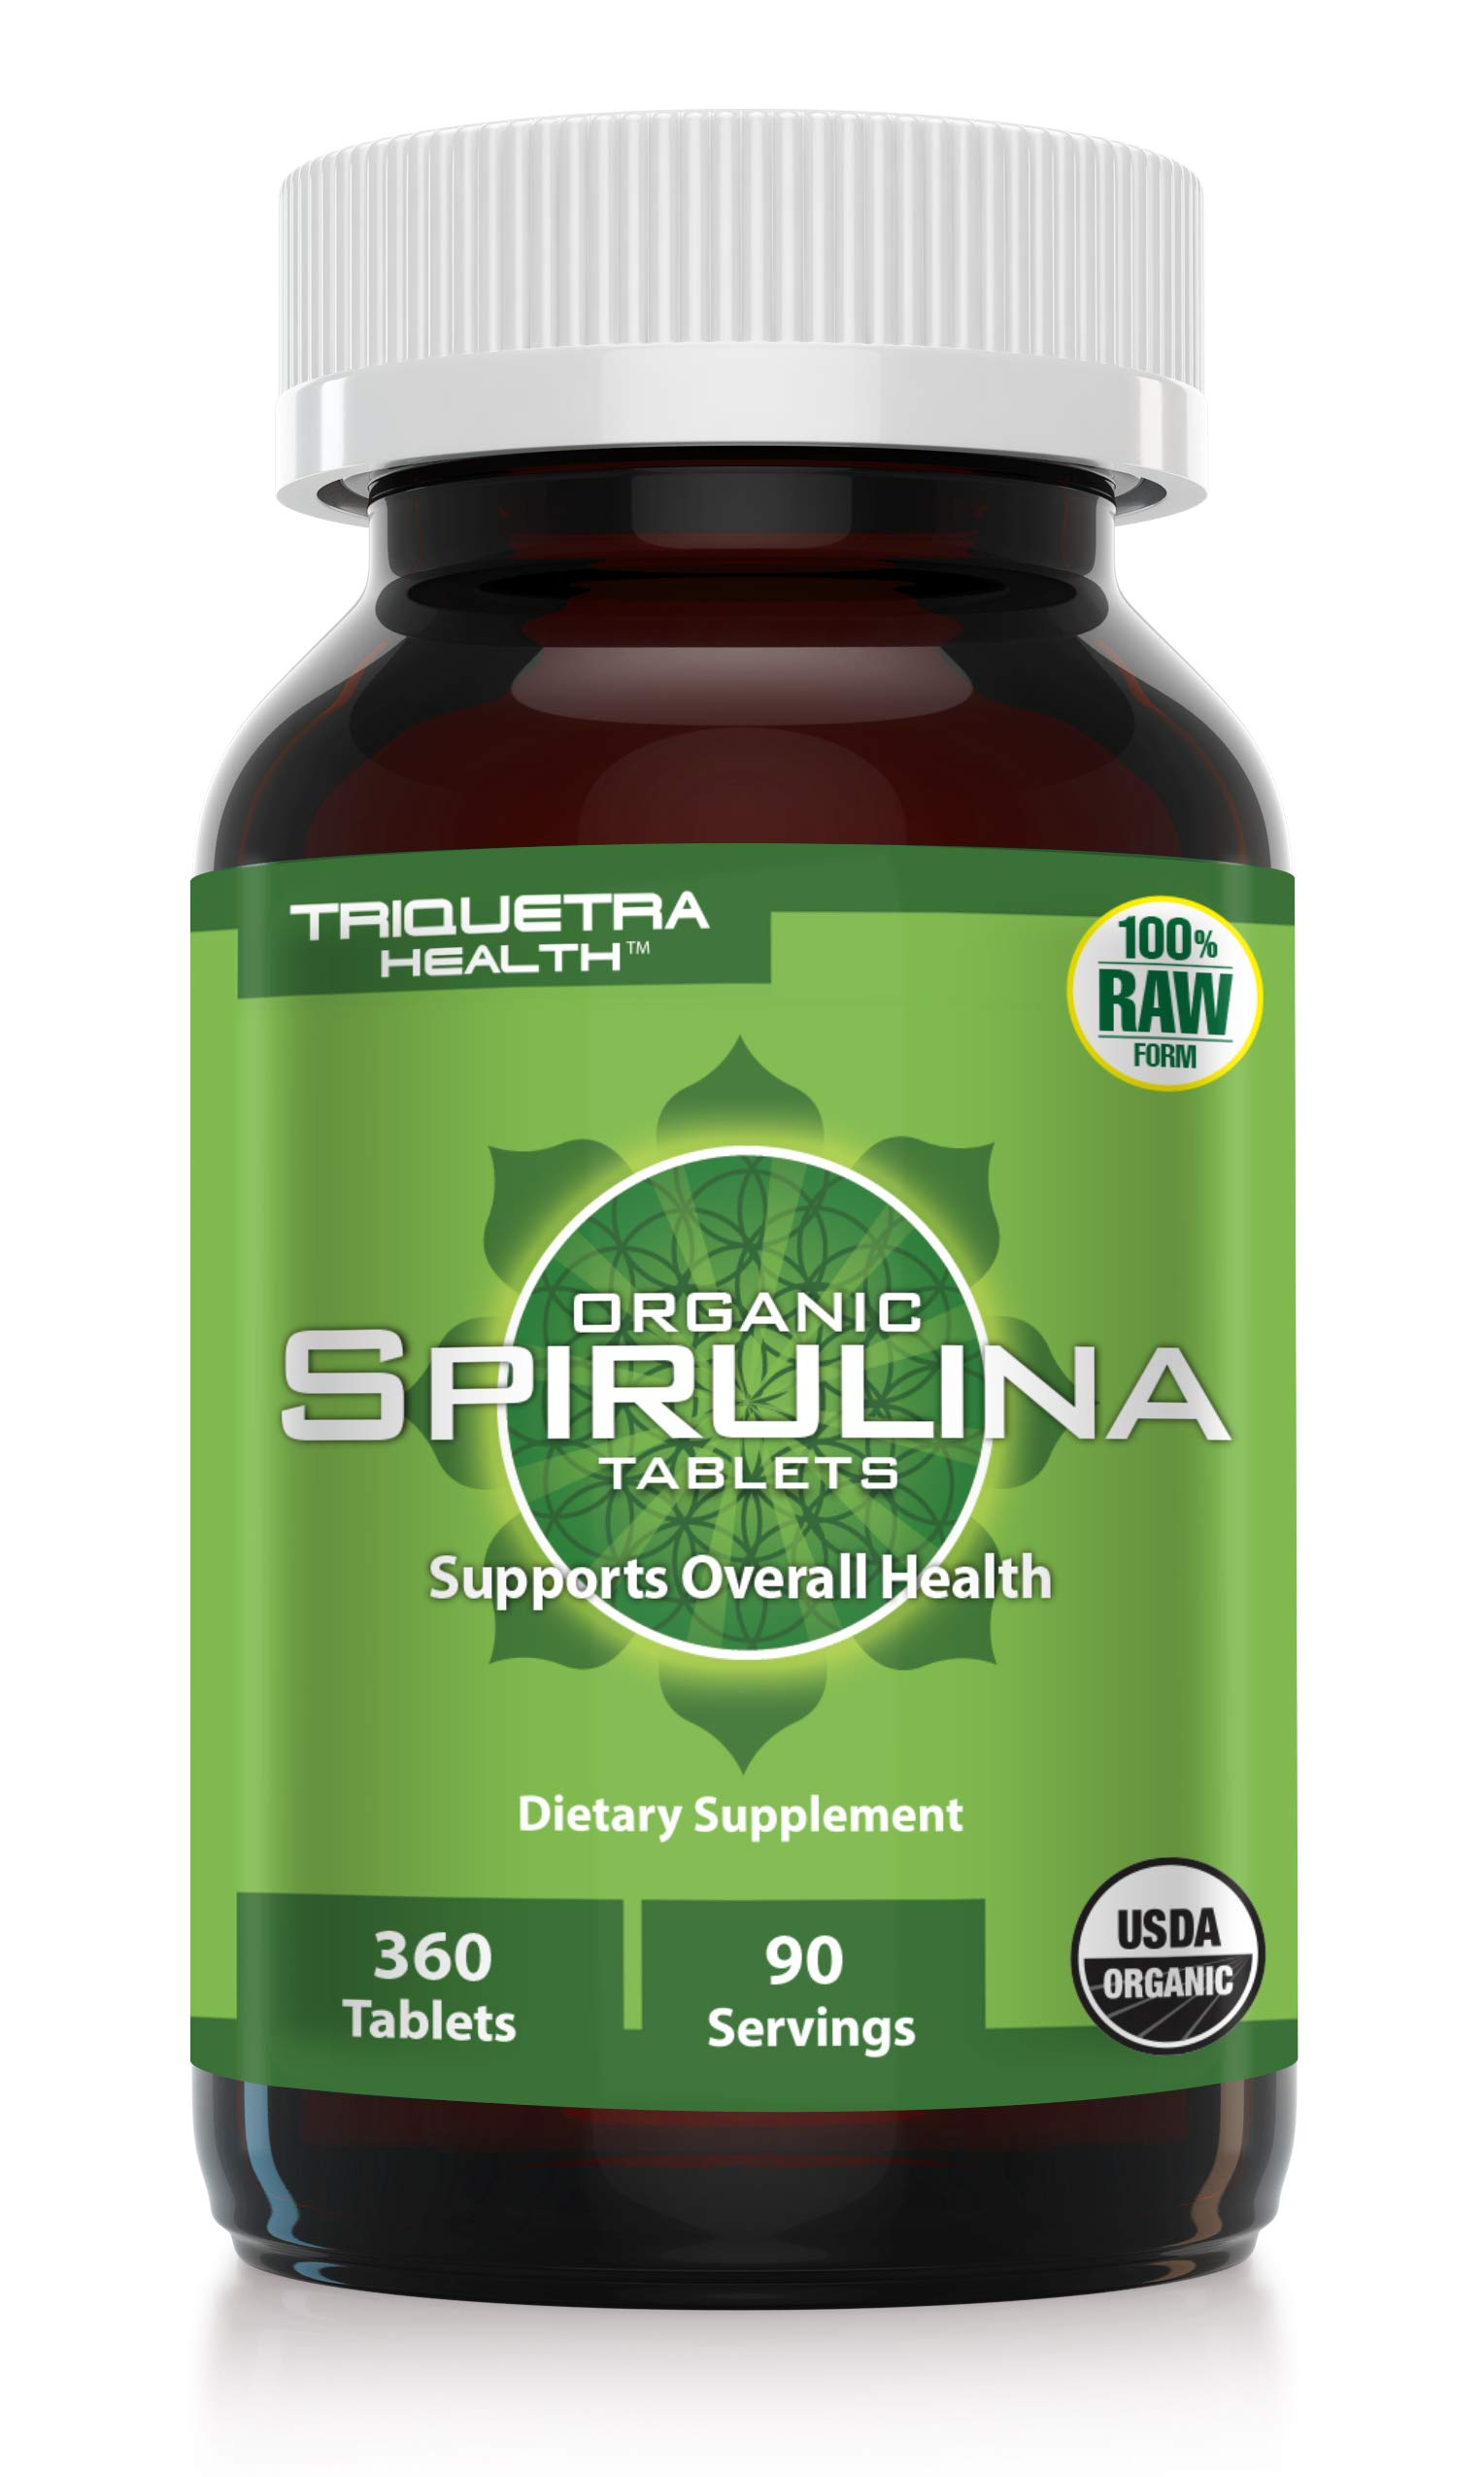 Organic Spirulina: 360 Tablets - 4 Organic Certifications - Raw & Clean Certified - Vegan Farming Process, Non-Irradiated, Max Nutrient Density (360 Count)